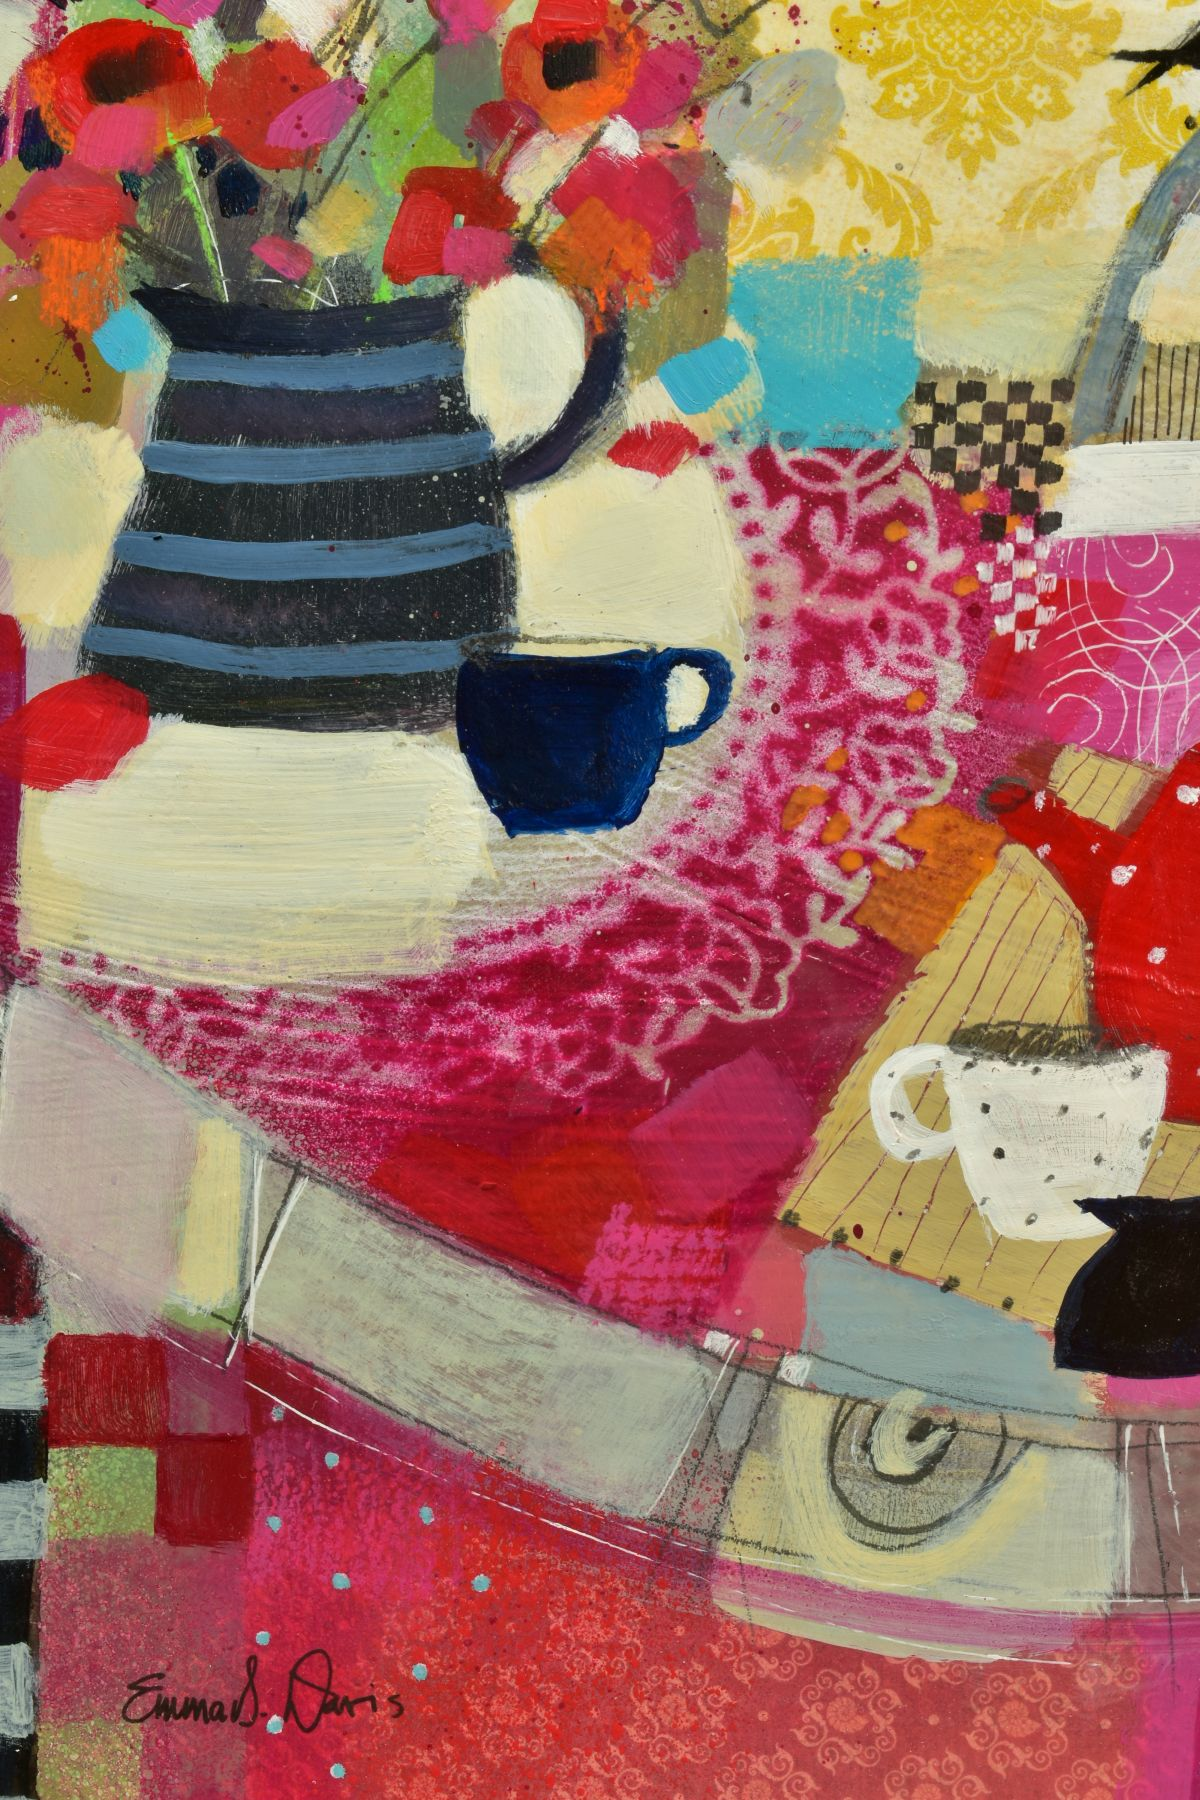 EMMA S. DAVIS (SCOTTISH 1975), 'Tabletop Textiles' a colourful still life study, signed bottom left, - Image 3 of 6